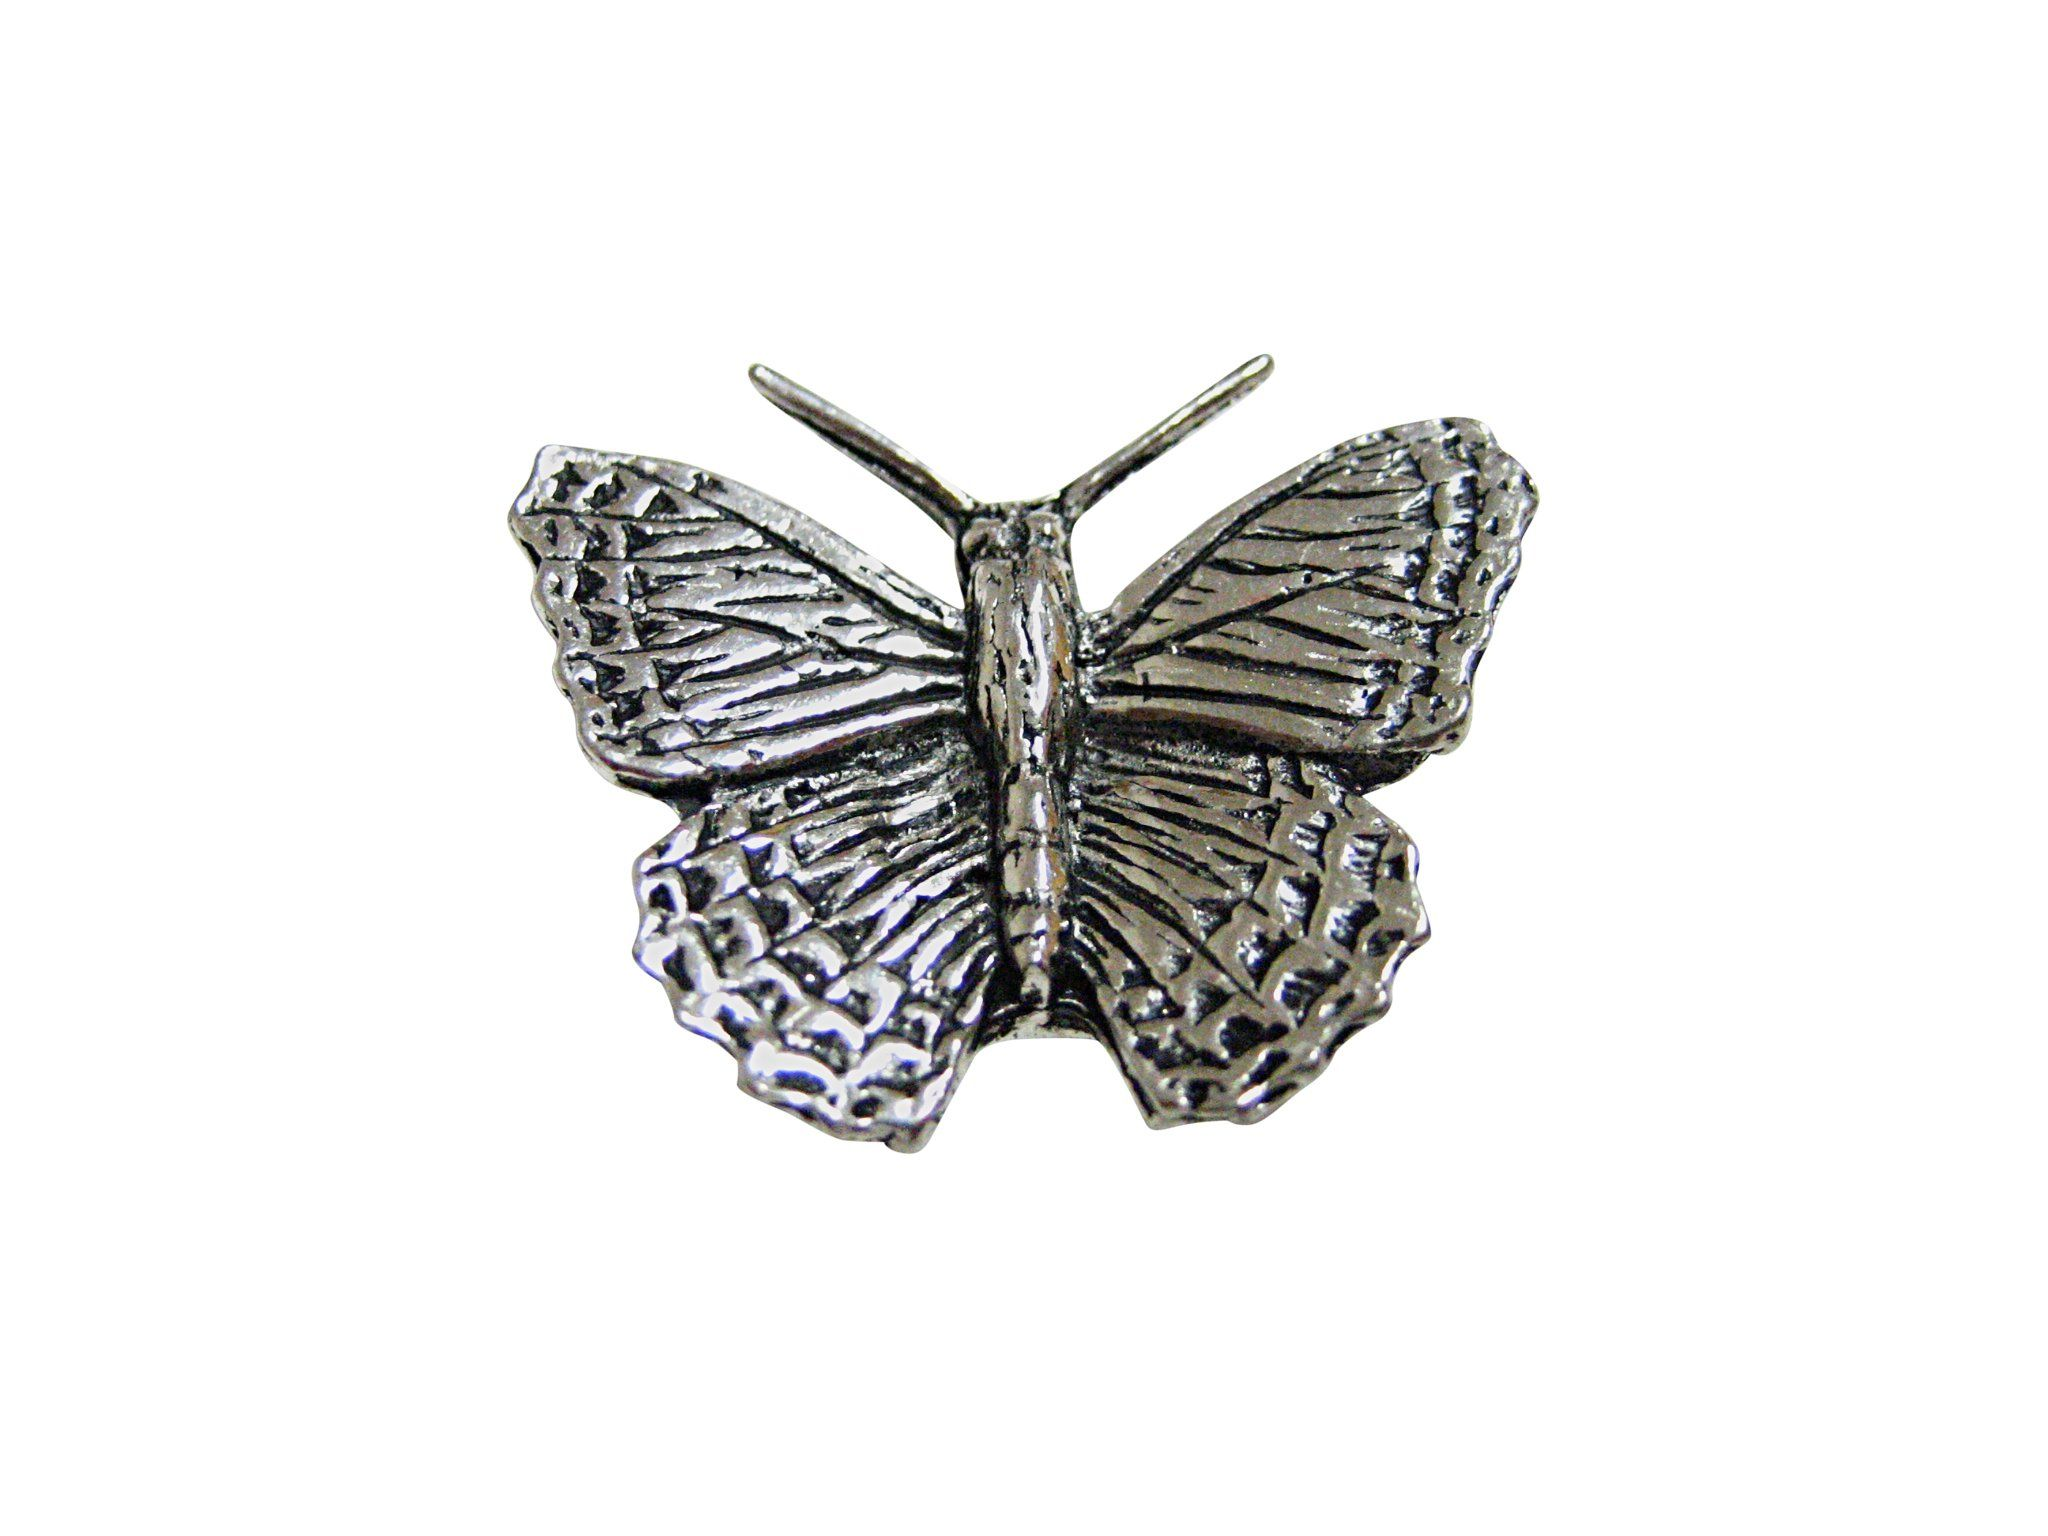 Silver Toned Etched Oval Grasshopper Locust Insect Tie Tack